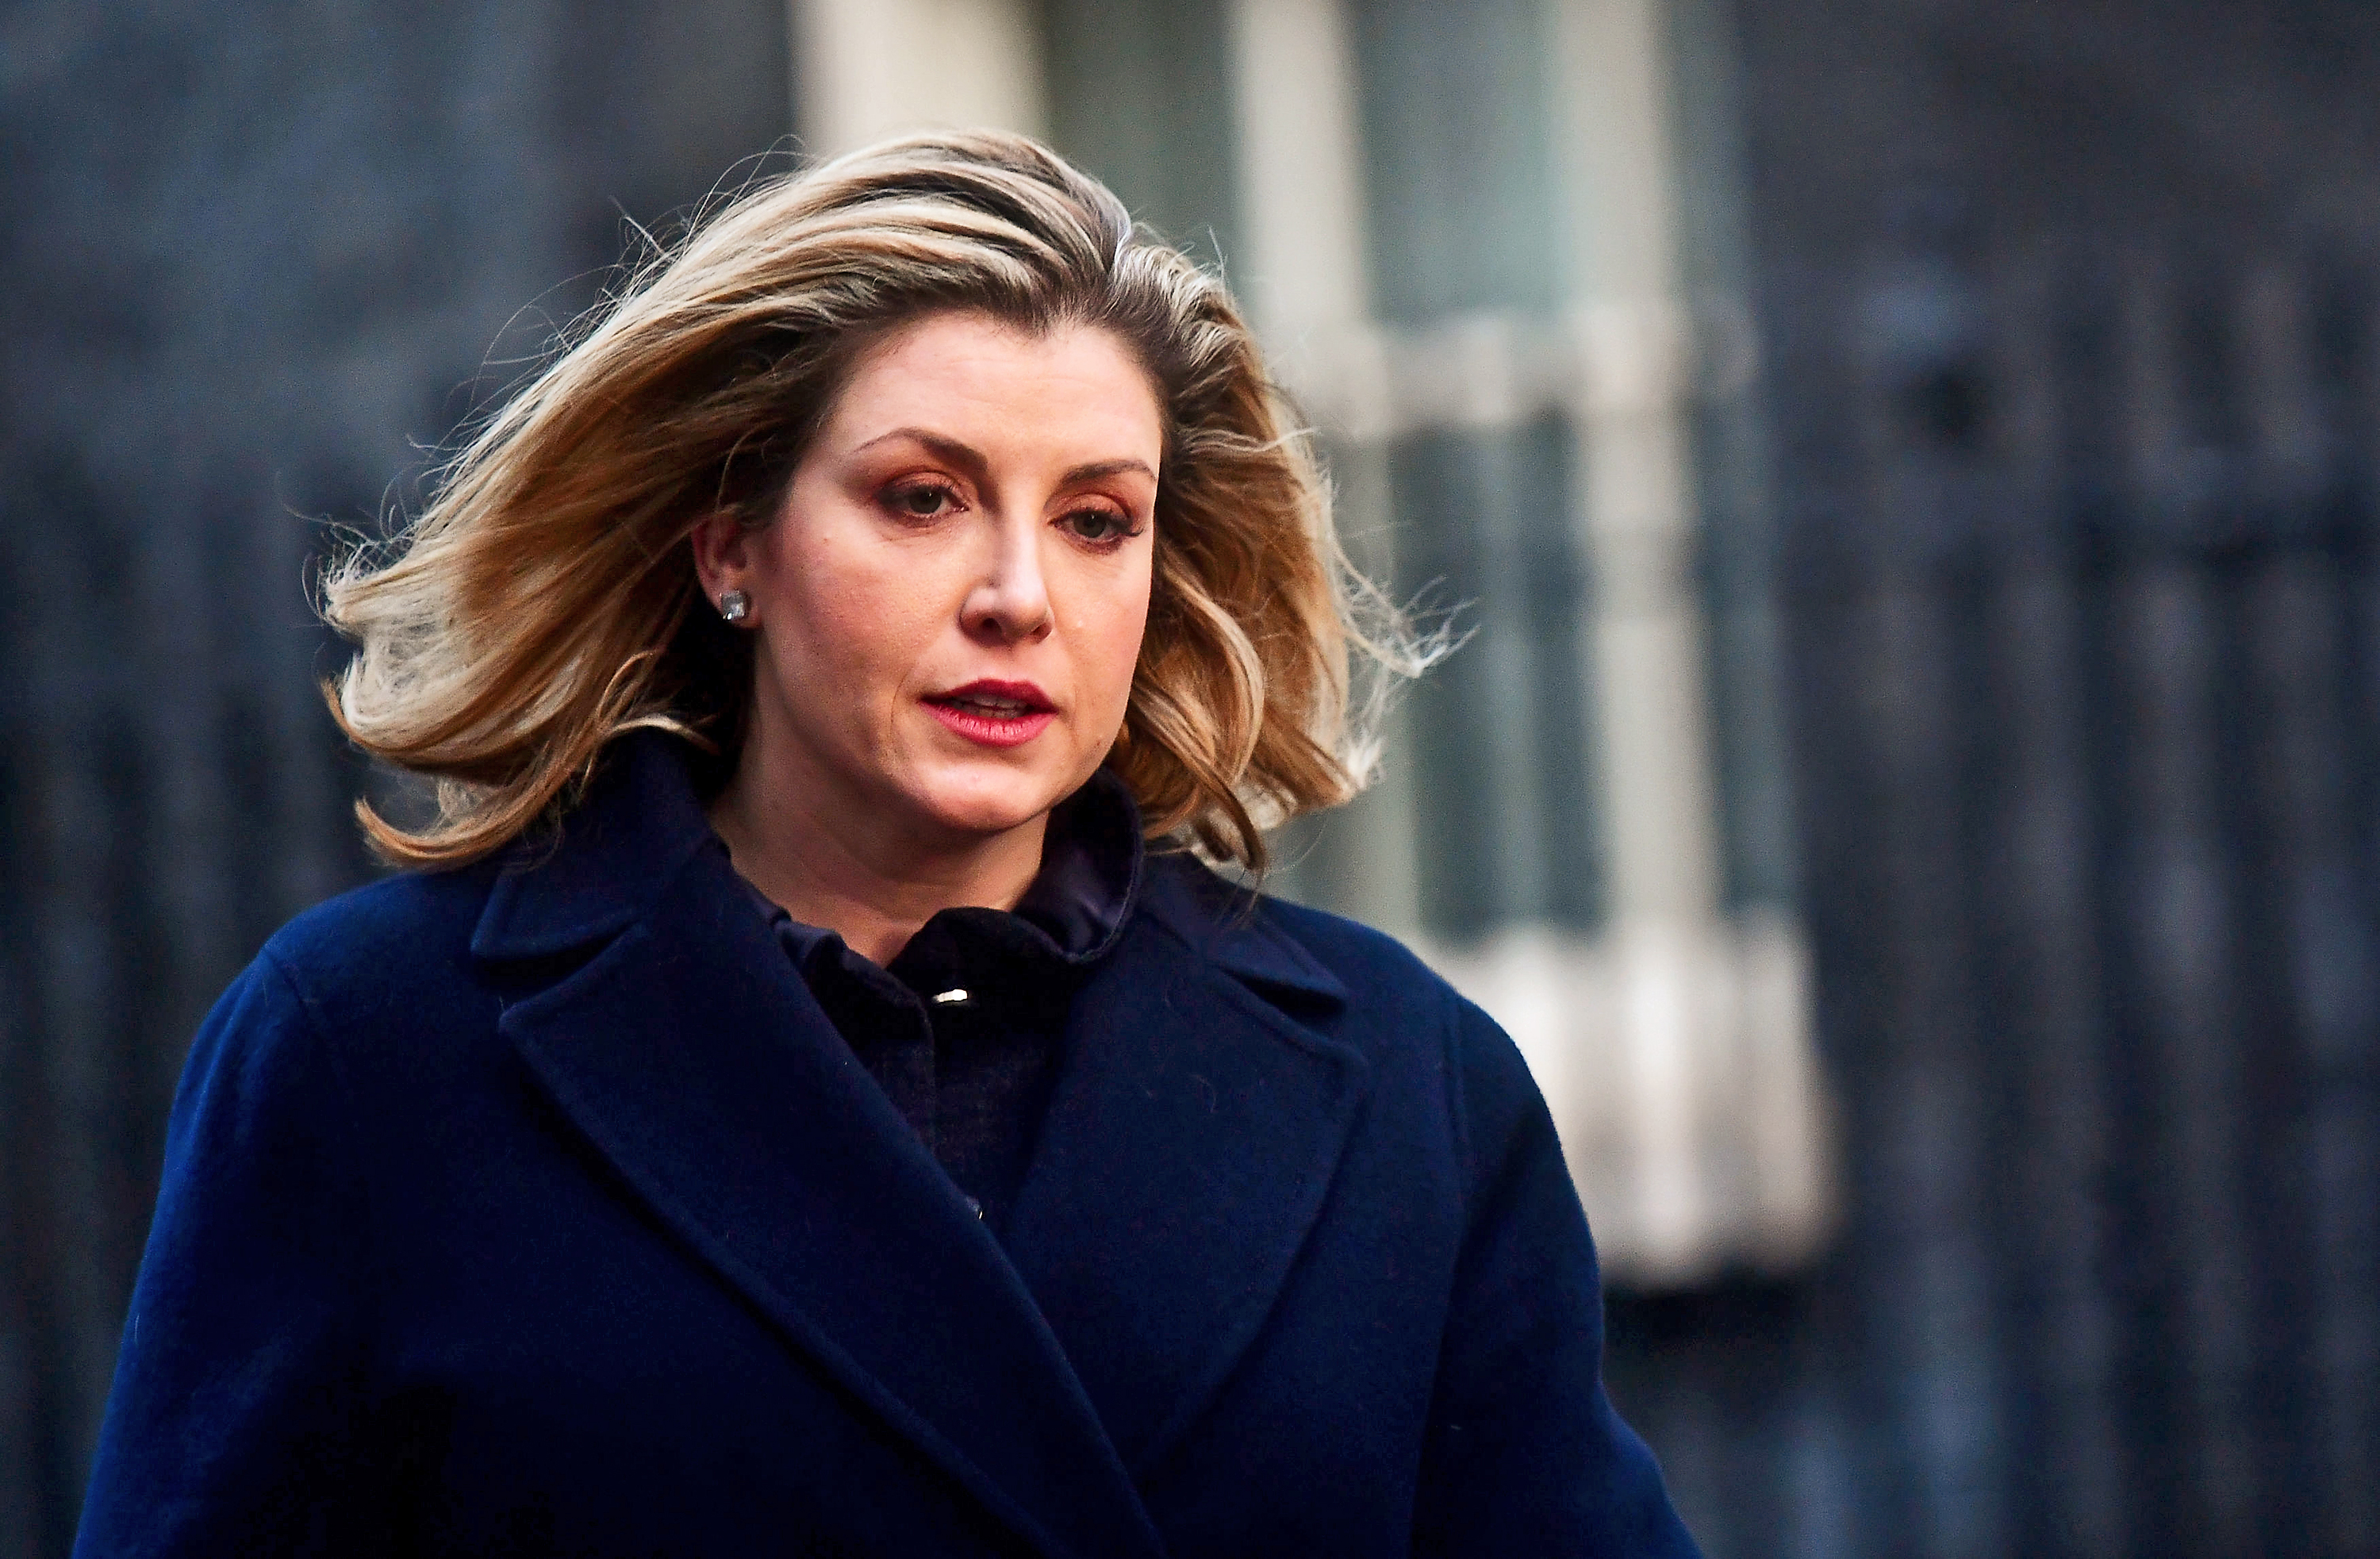 Penny Mordaunt, the minister for women and equalities, is expected to raise the issue at a conference hosted by Bright Blue